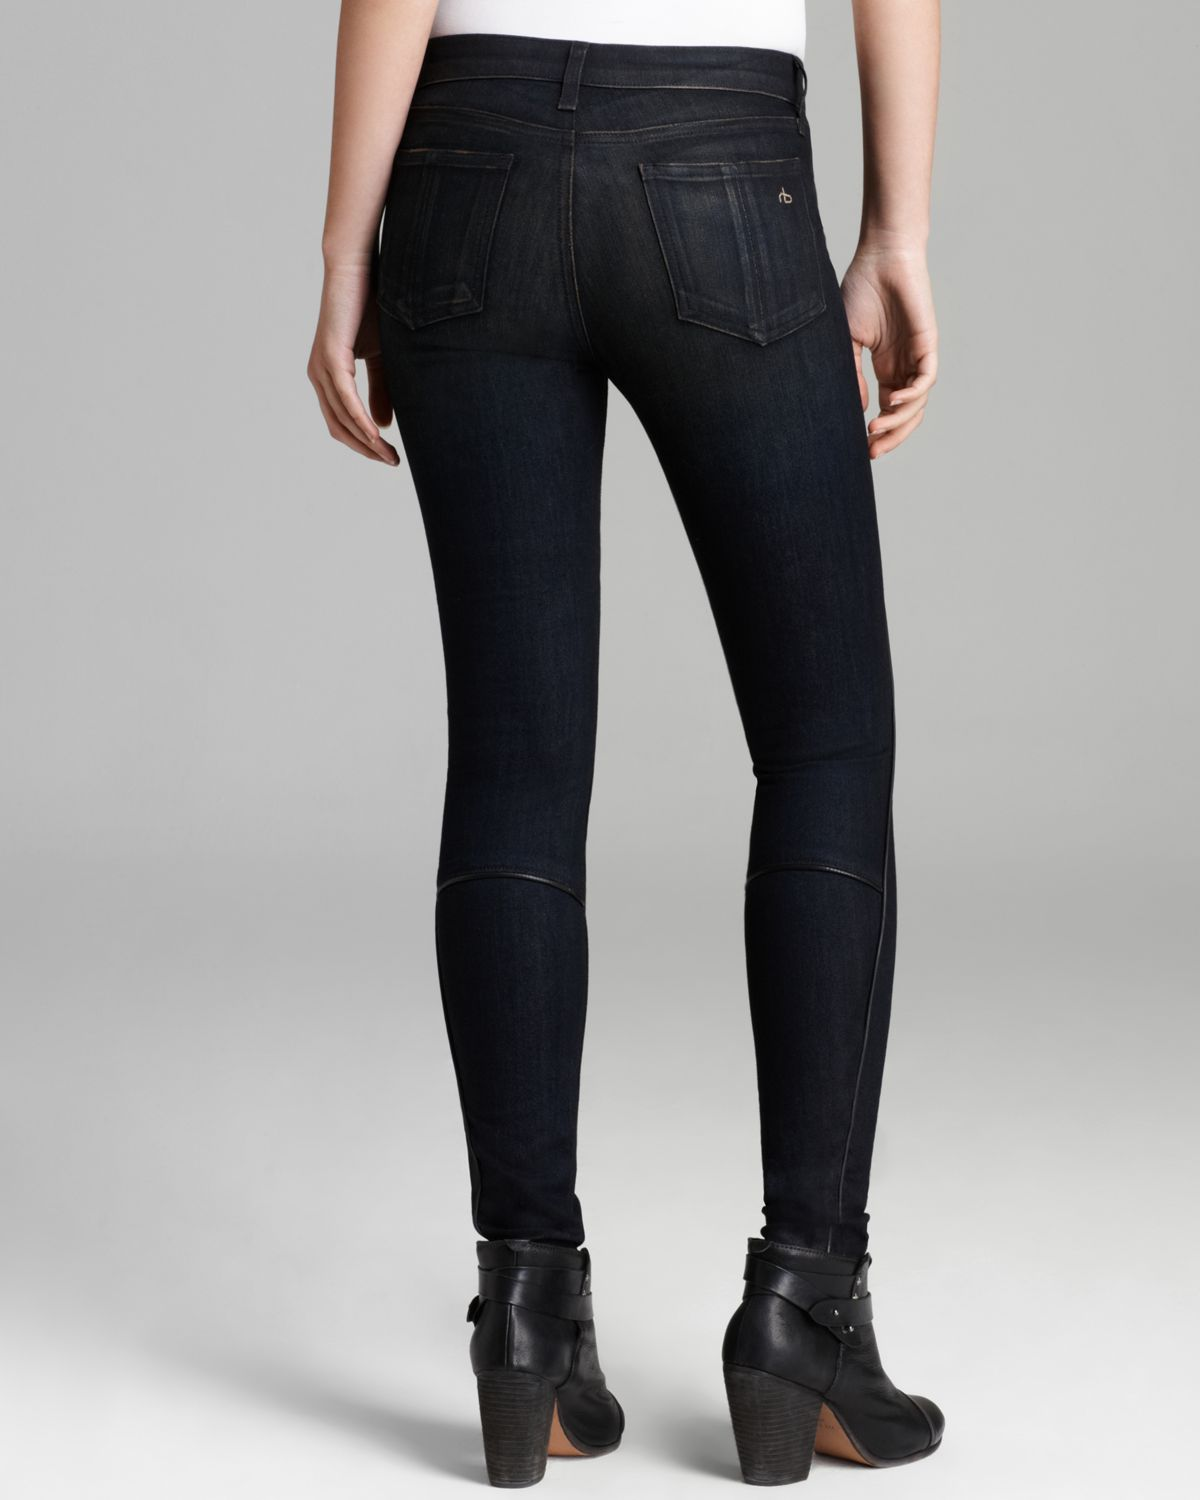 Rag & Bone Jeans The Bomber Legging in Wakefield in Black